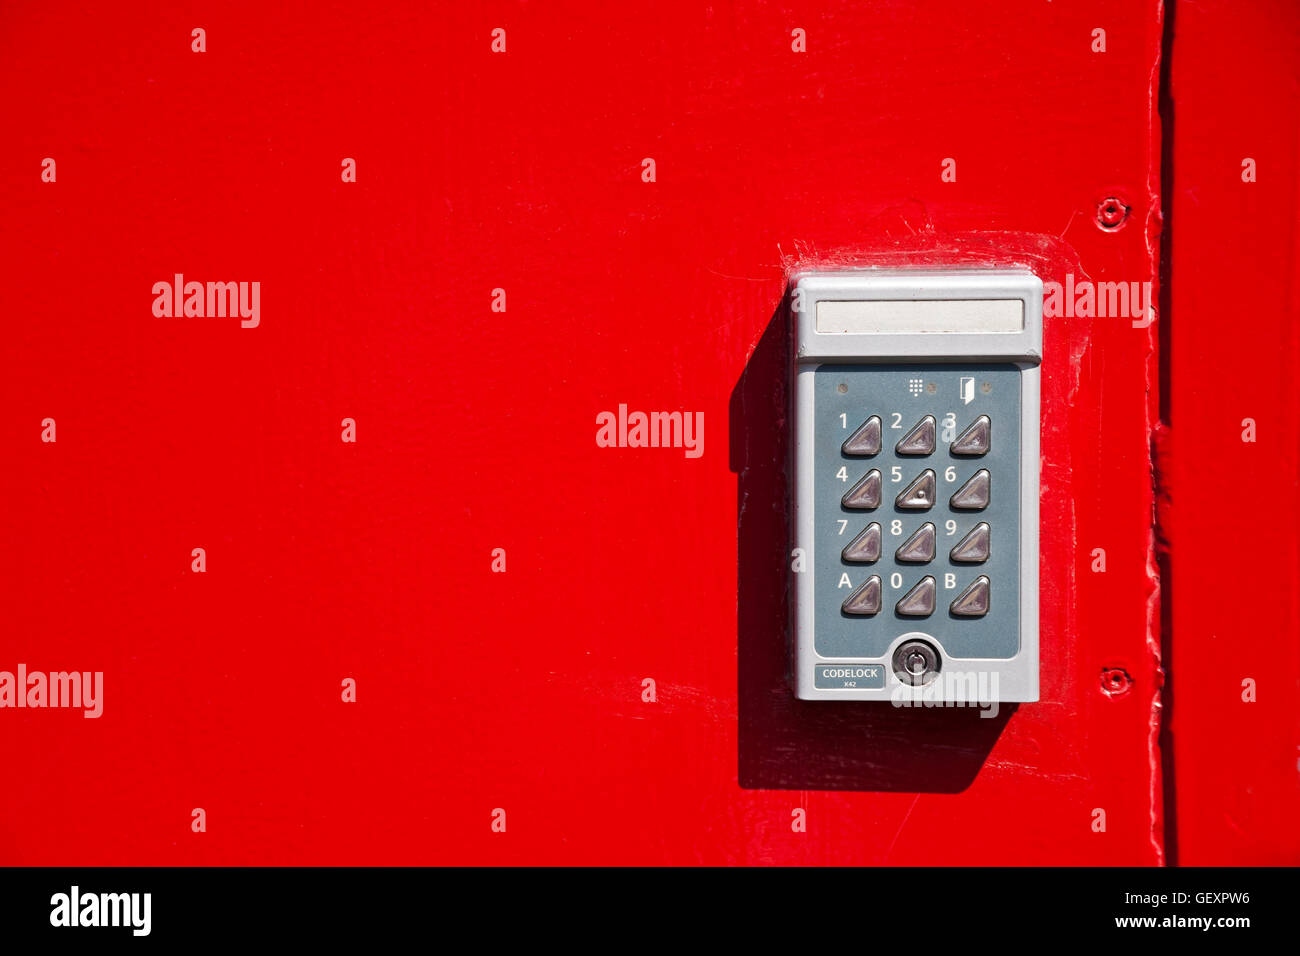 Door Key Code Panel Stock Photos Images Keypad Combination Lock Circuit Bright Red Metal With Electronic Image